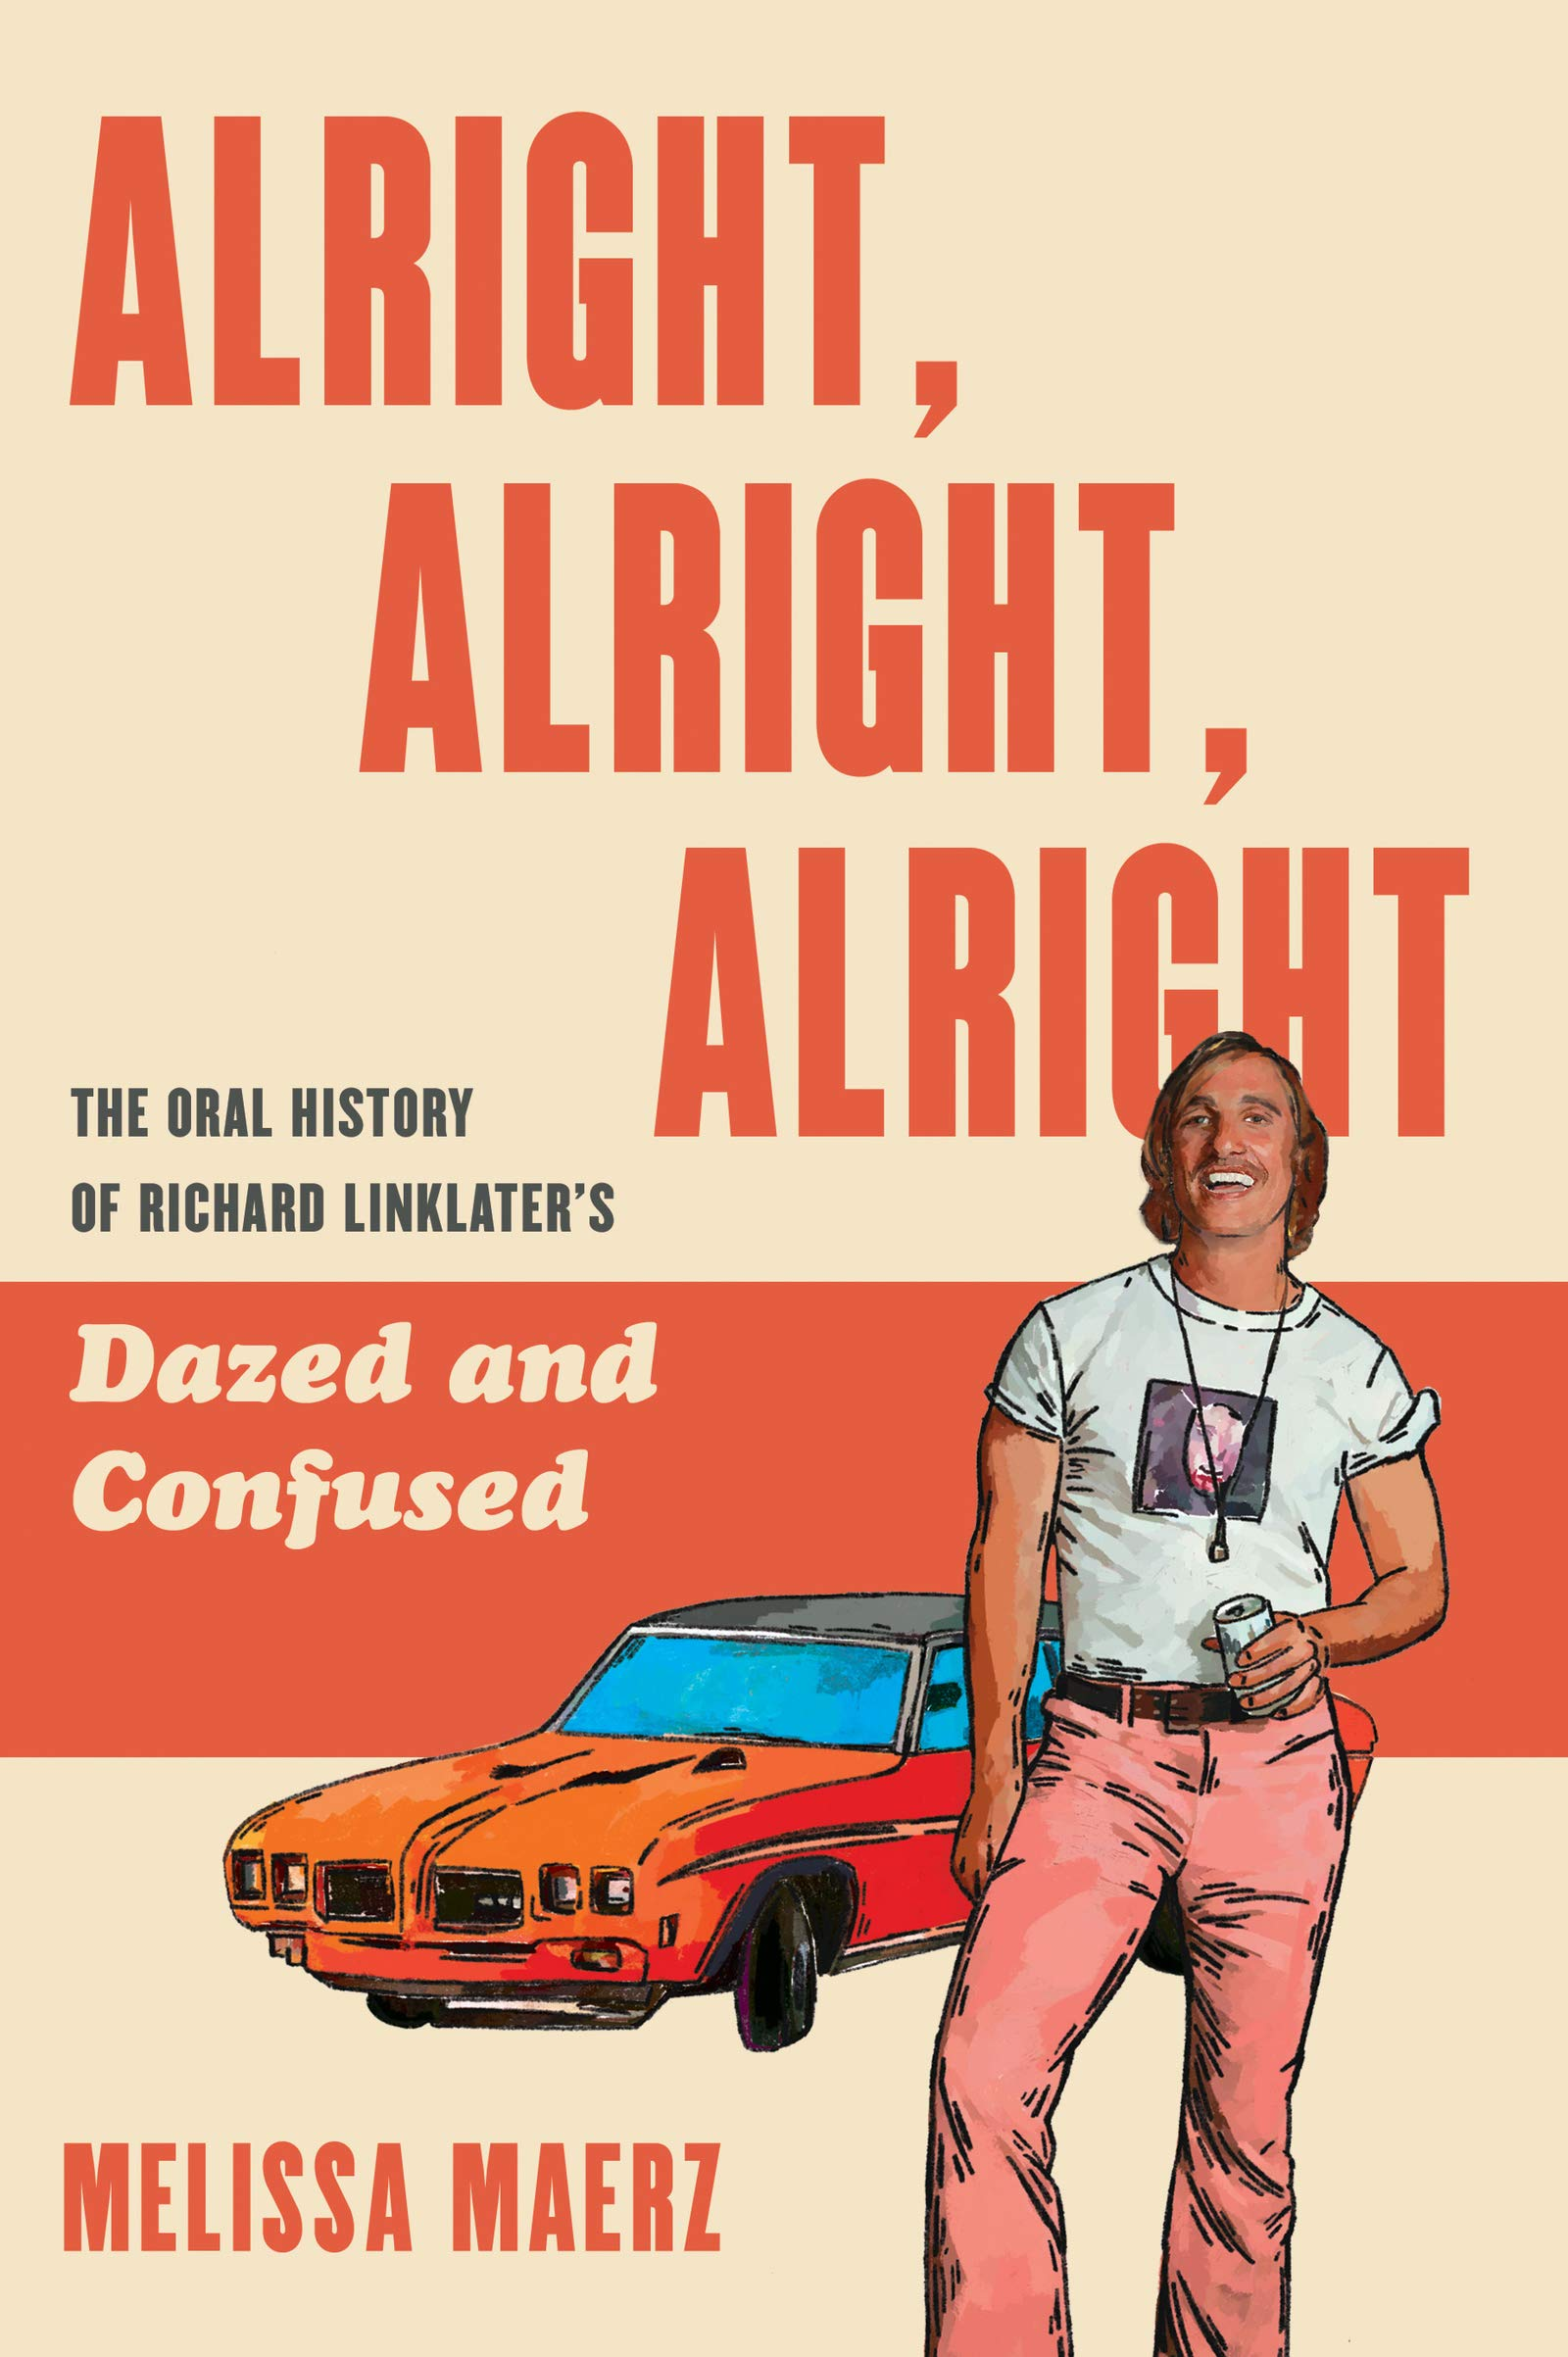 9. Alright, Alright, Alright: The Oral History of Richard Linklater's 'Dazed and Confused' by Melissa Maerz